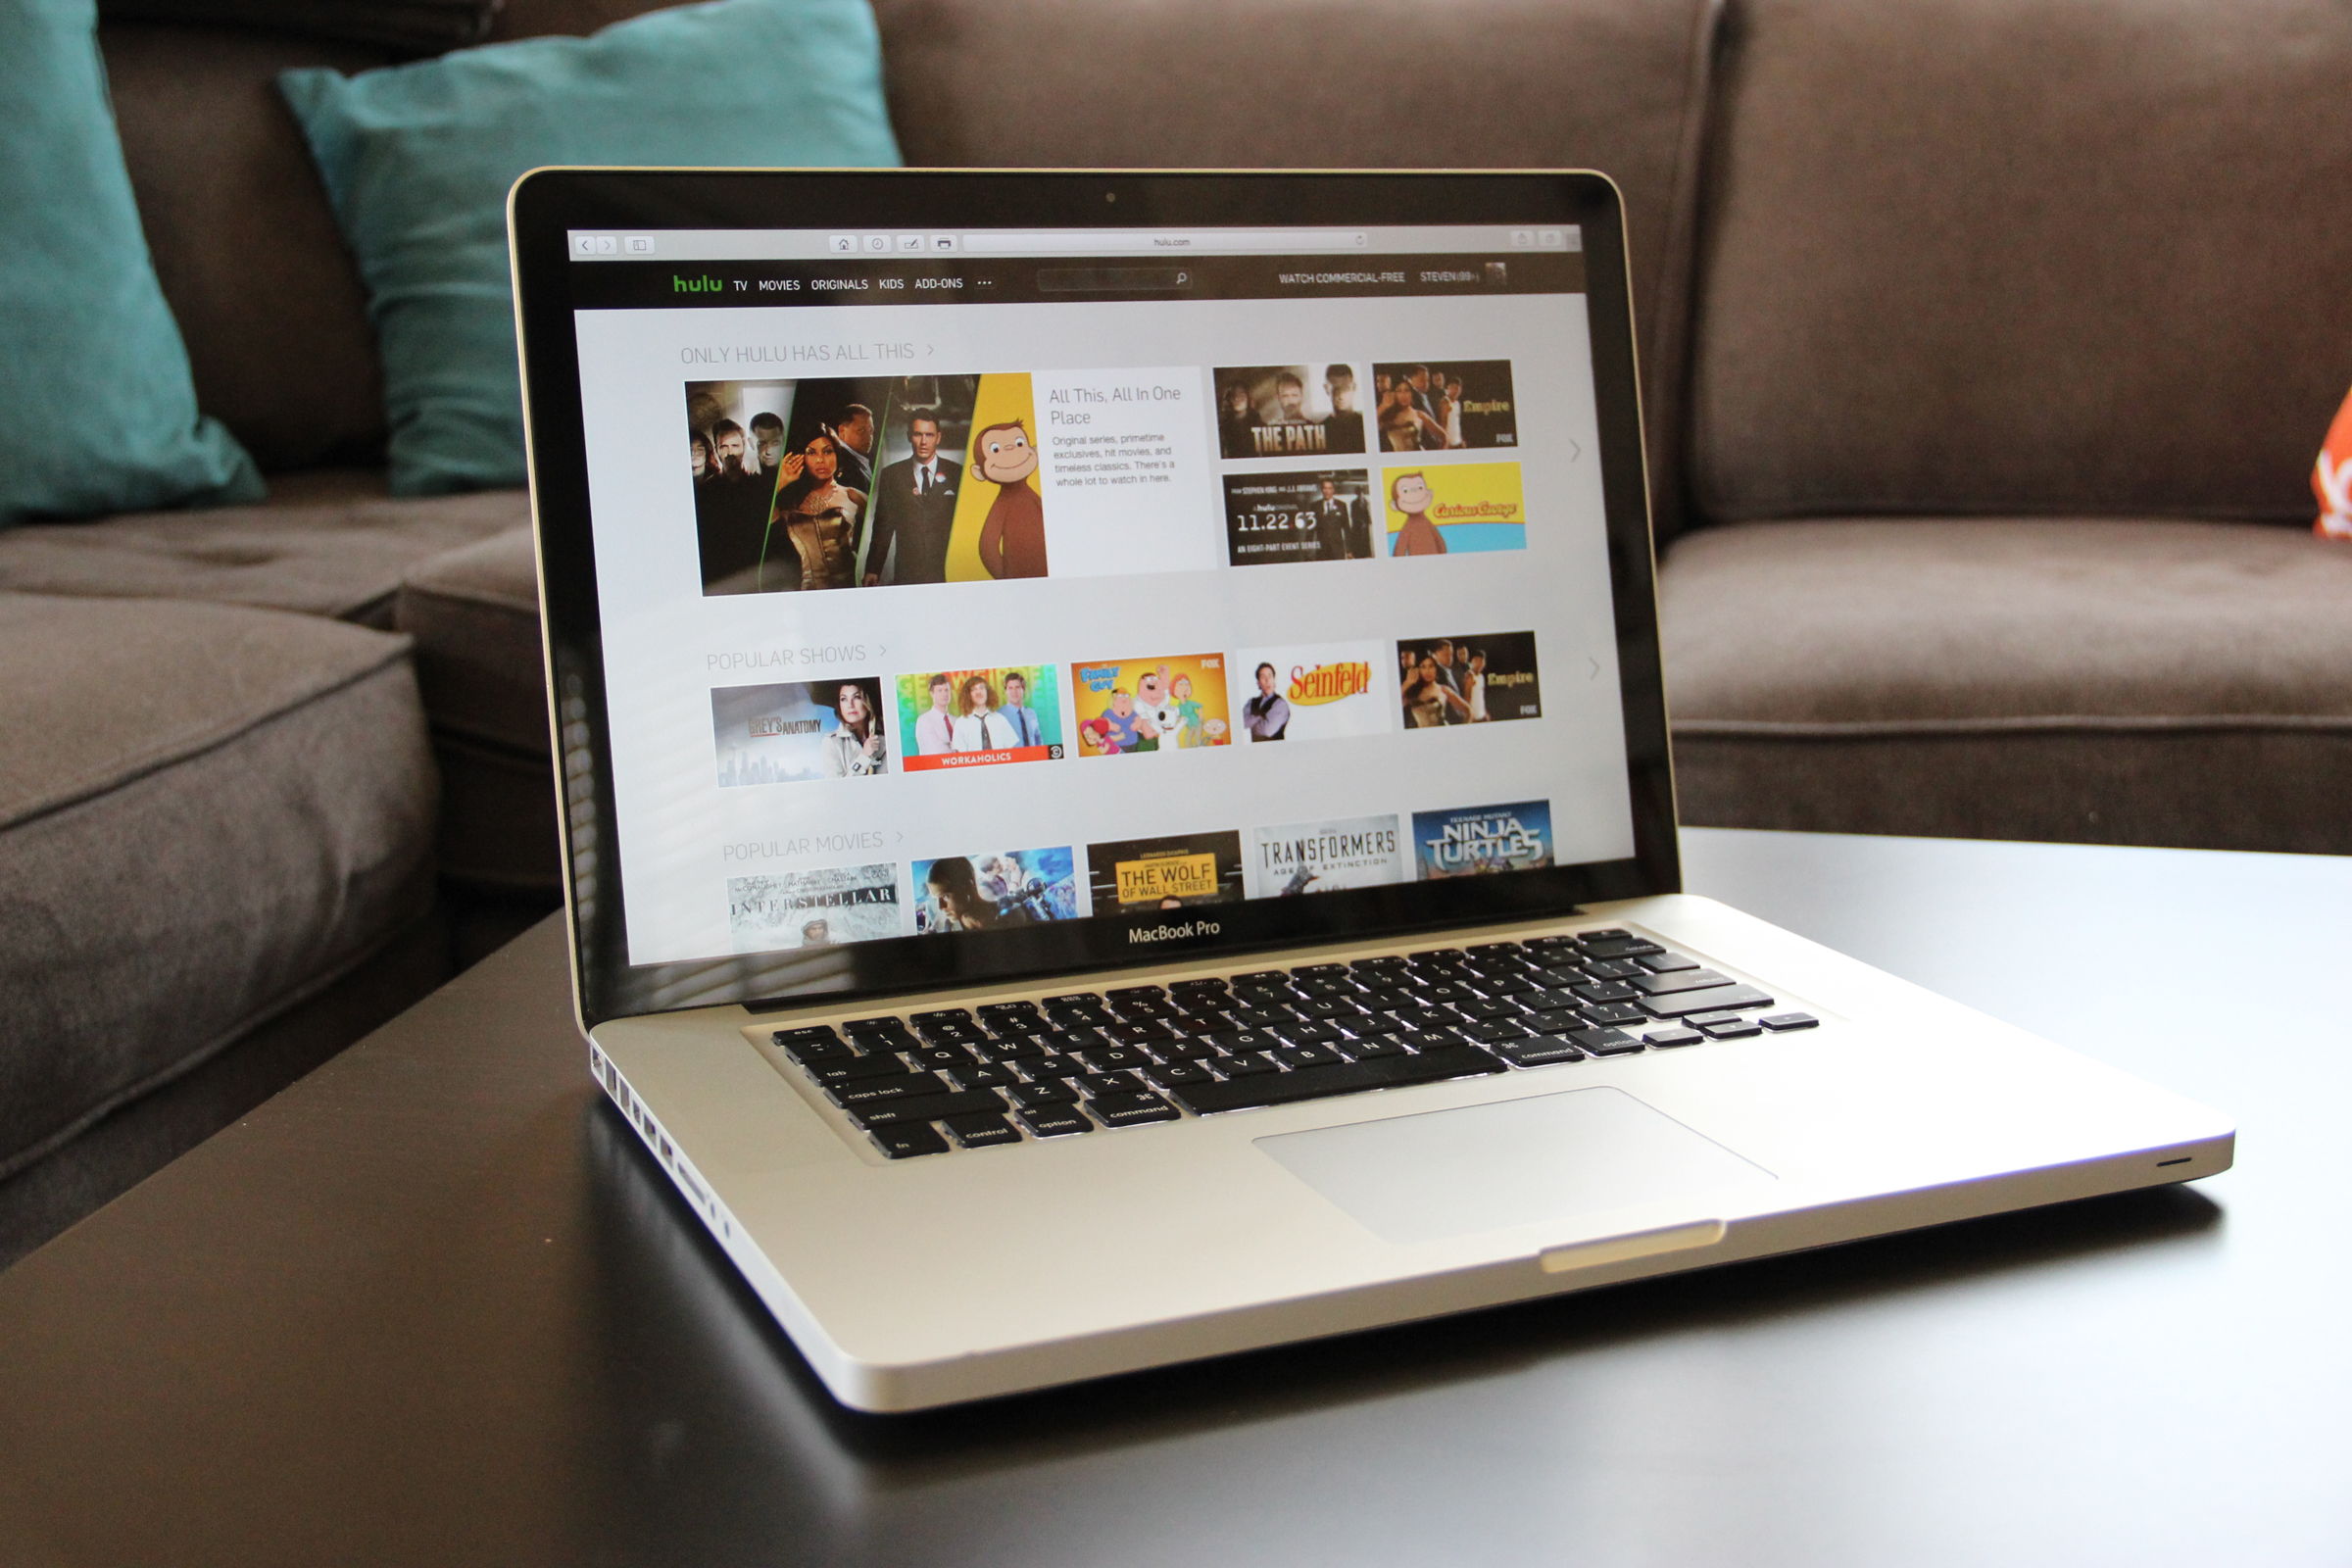 Best Laptop for College Engineering Cheap